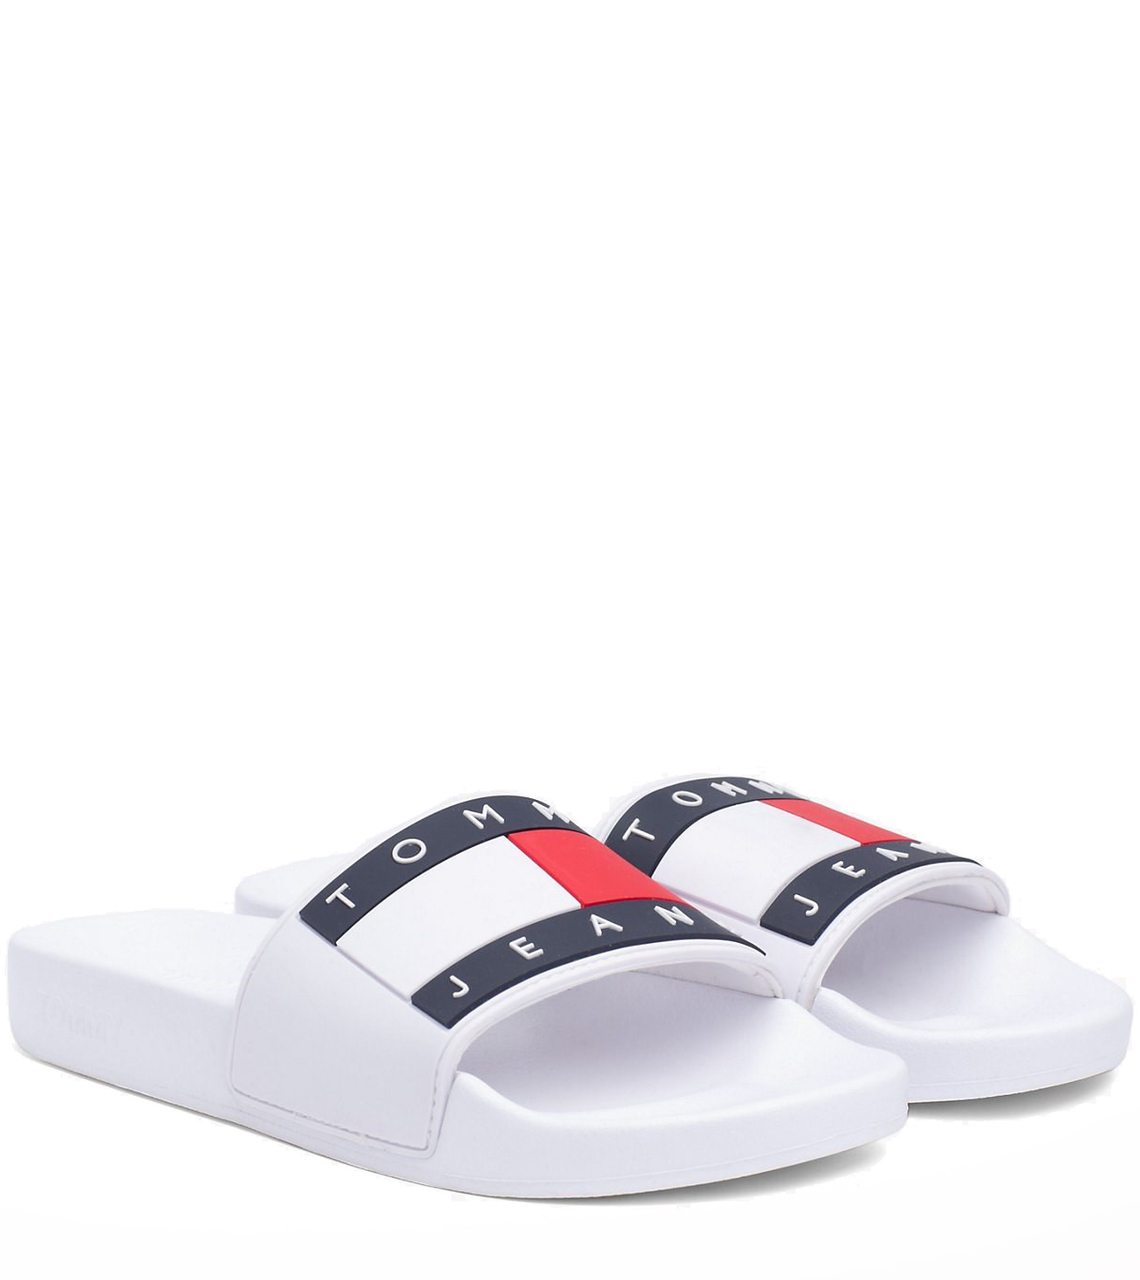 Tommy Hilfiger bílé unisex pantofle Tommy Jeans Flag Pool Slide White